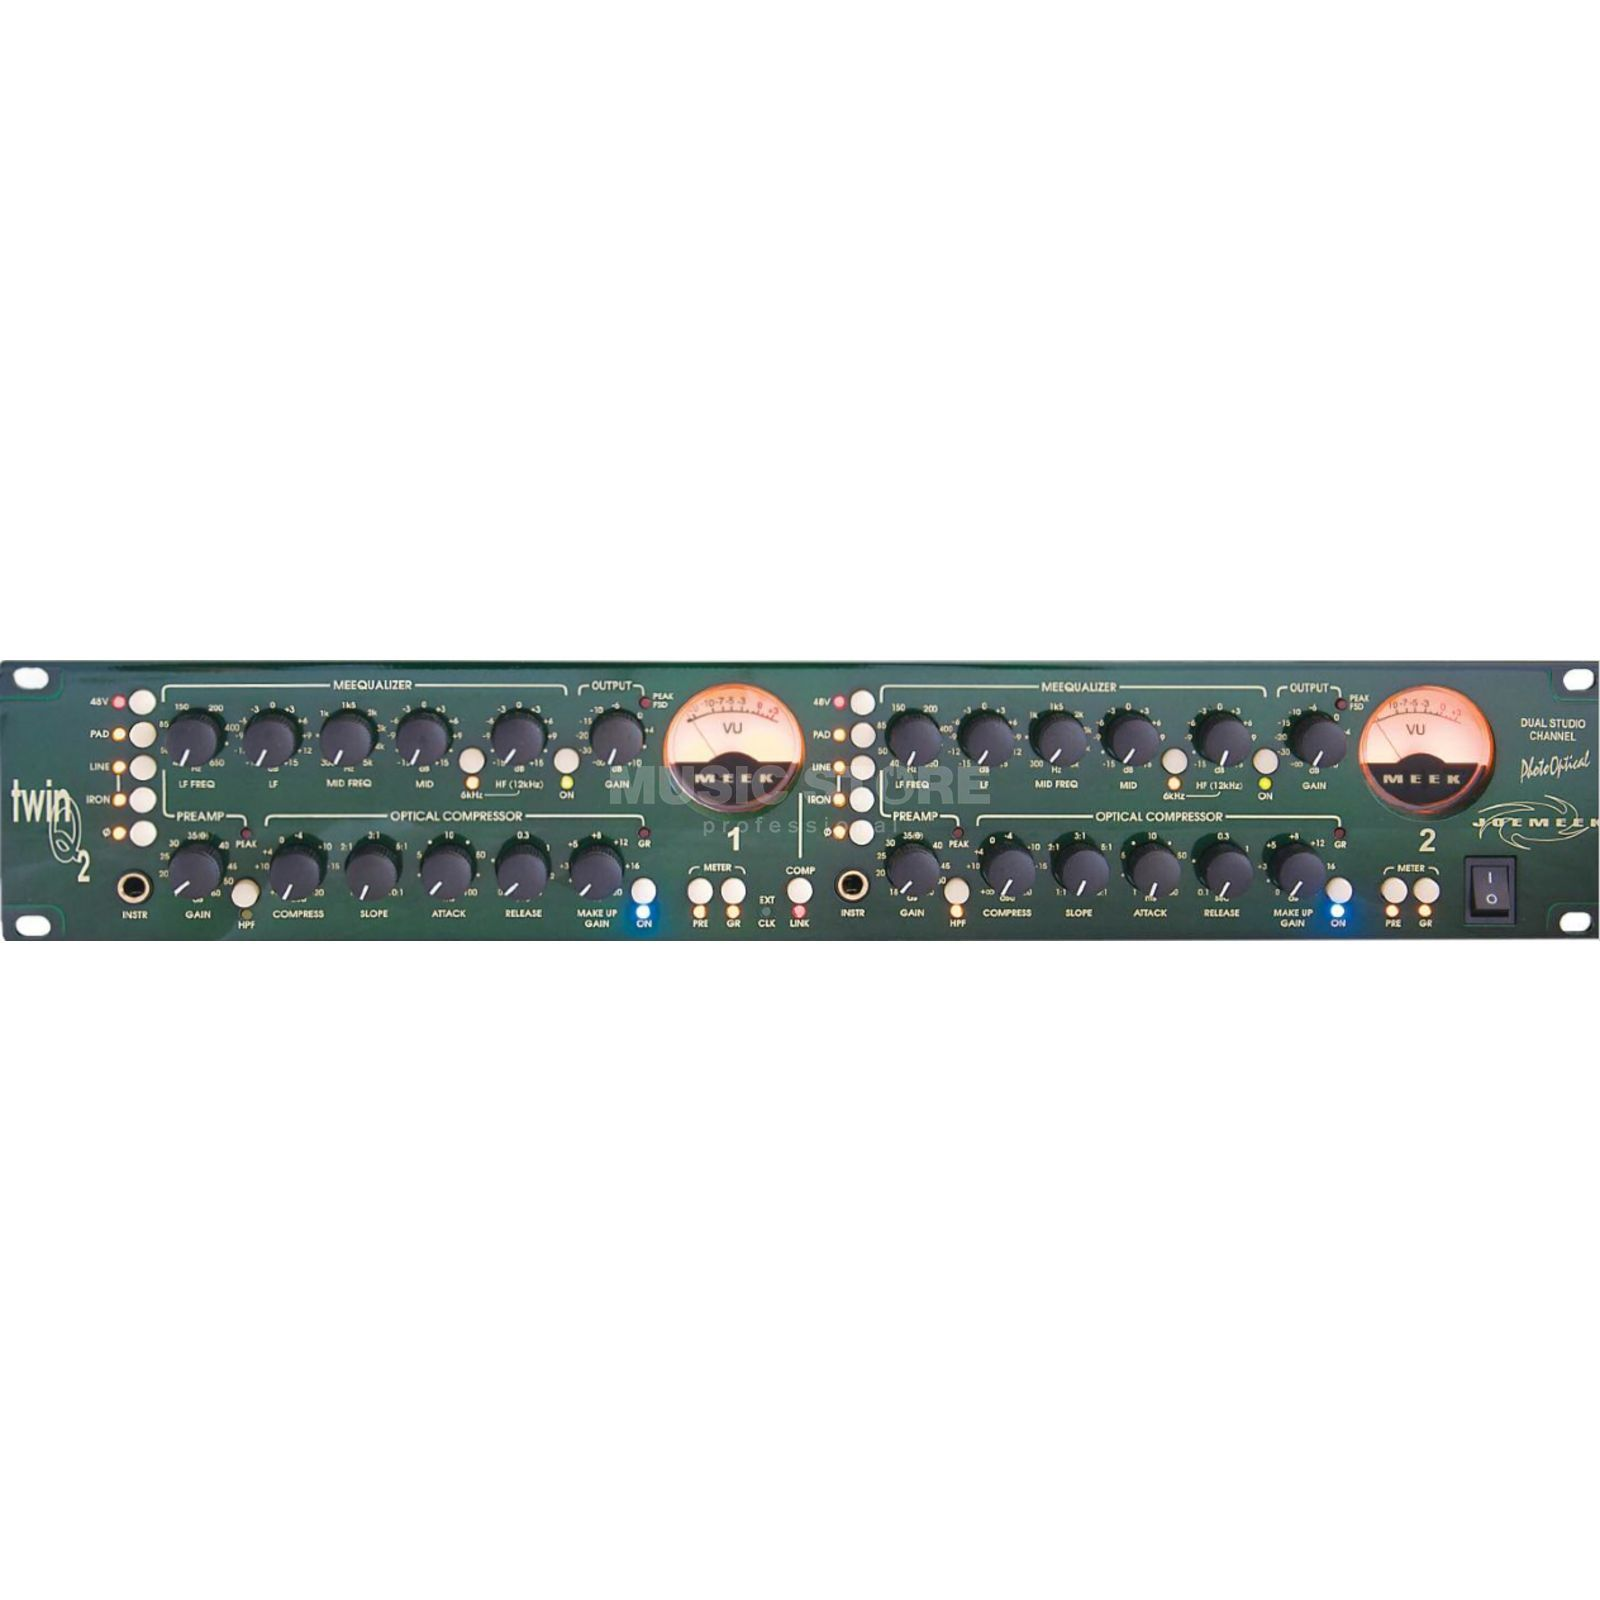 Joemeek twinQ2 Dual Mono Channel Strip opt/Coax - Out, WC in Produktbillede